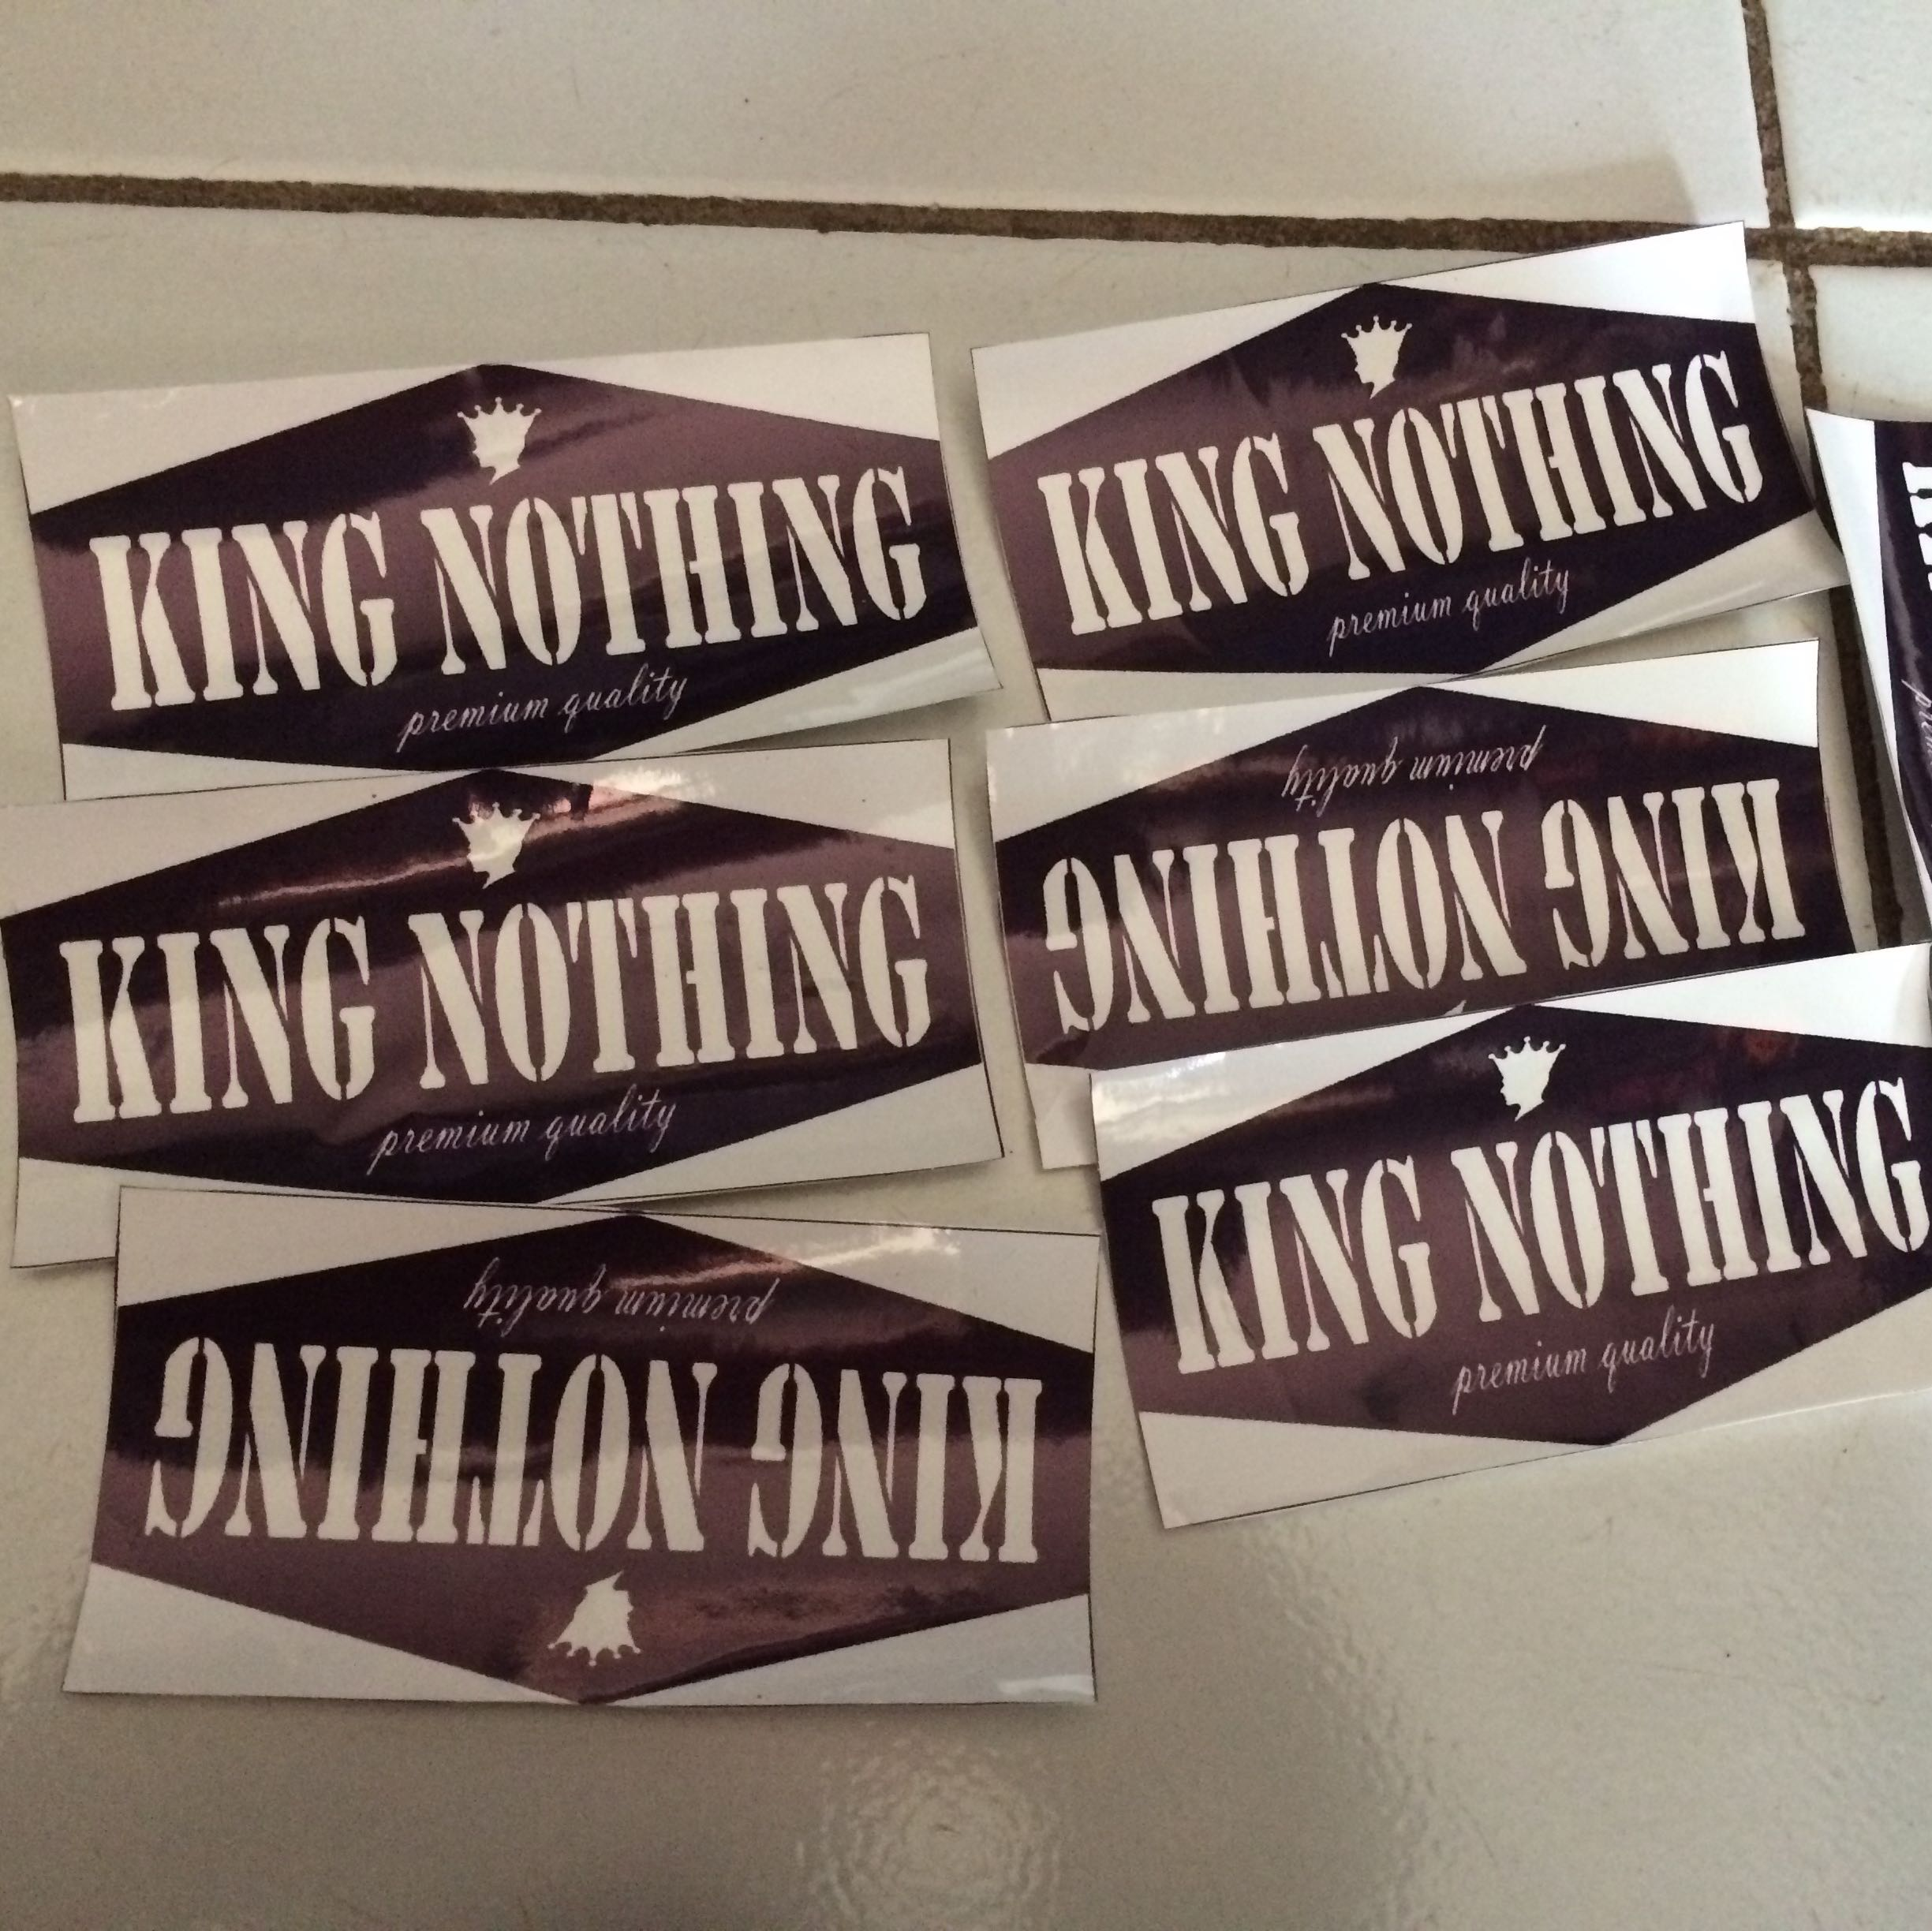 kingnothing77